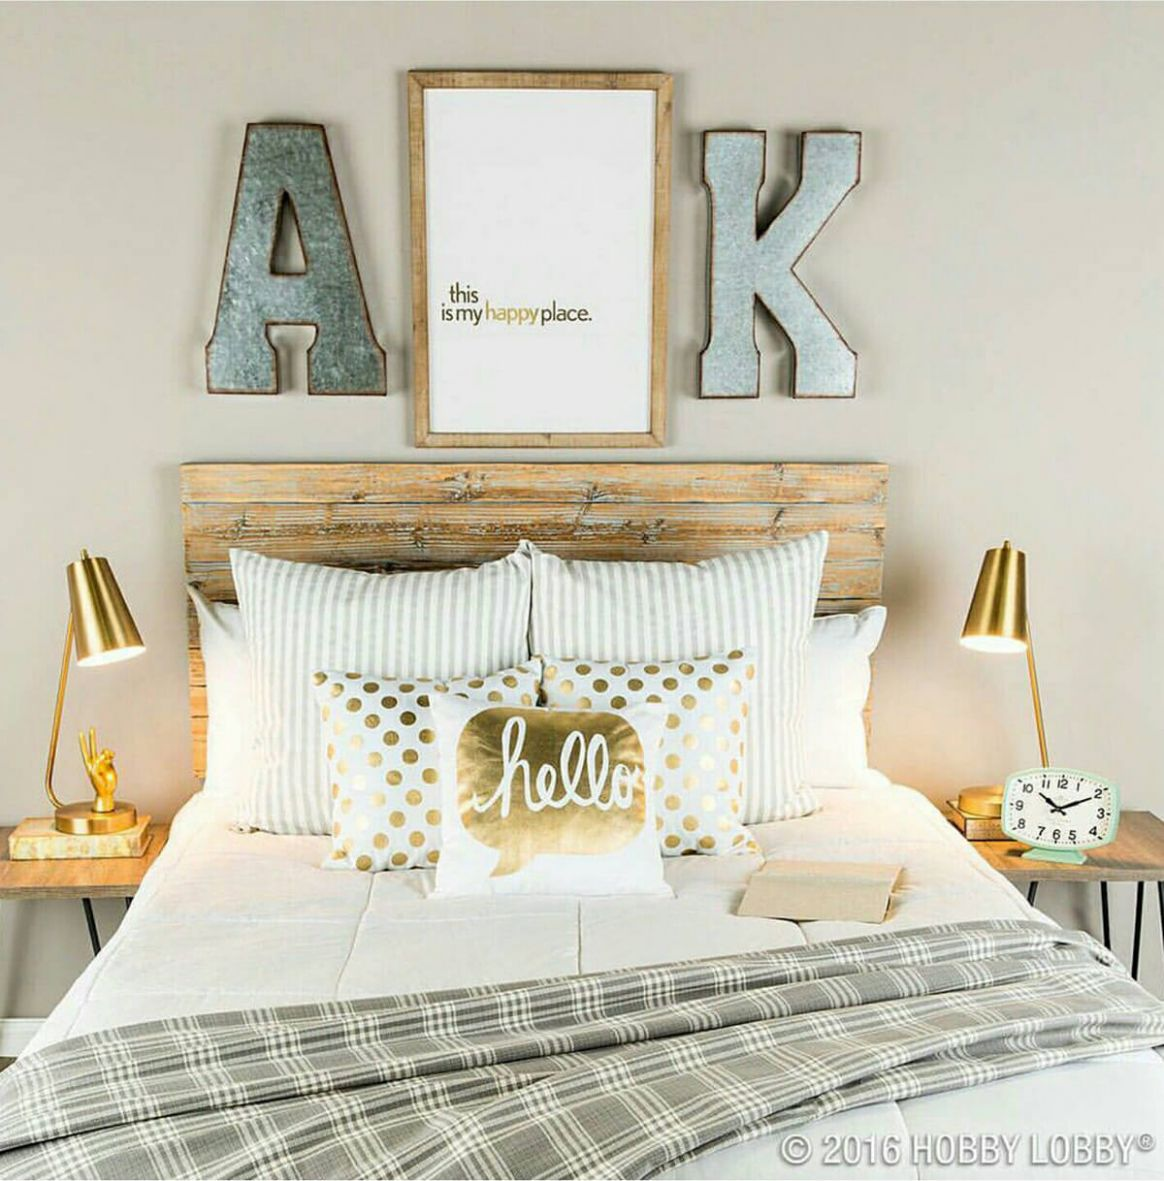 8+ Best Bedroom Wall Decor Ideas and Designs for 8 - room wall decor ideas